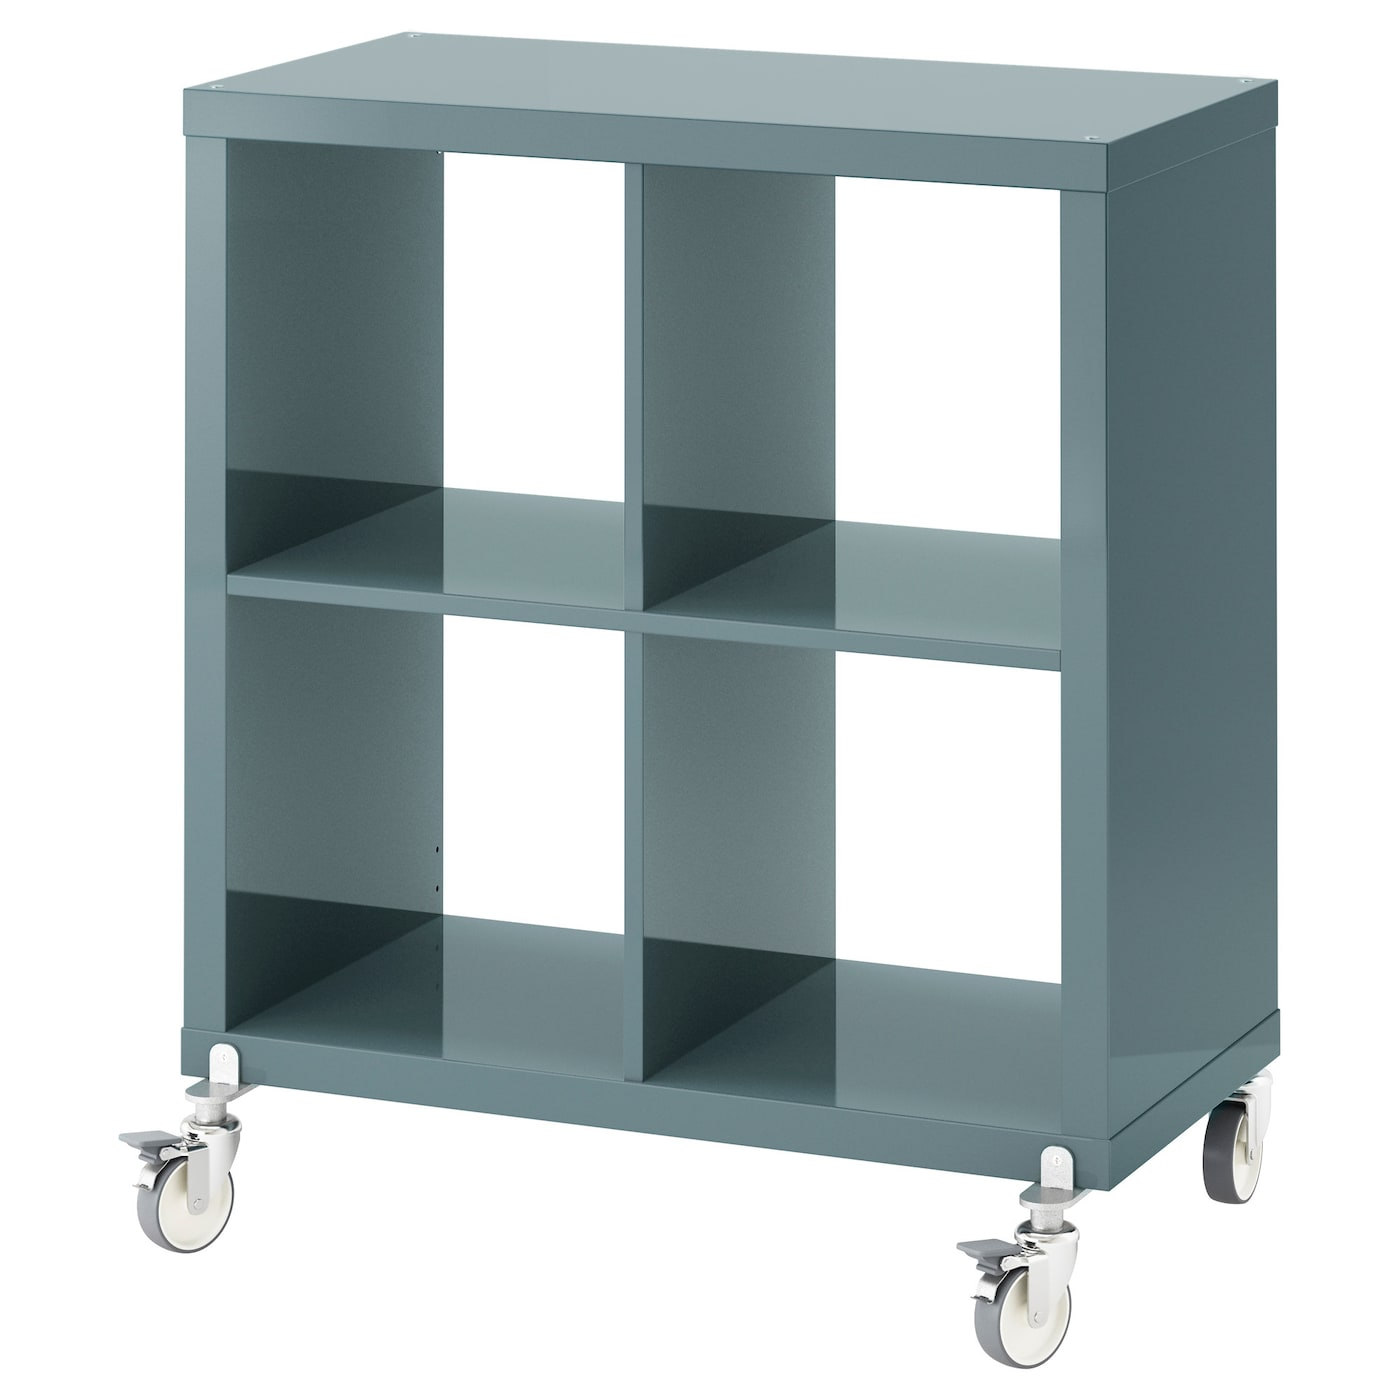 kallax shelving unit on castors high gloss grey turquoise 77x89 cm ikea. Black Bedroom Furniture Sets. Home Design Ideas